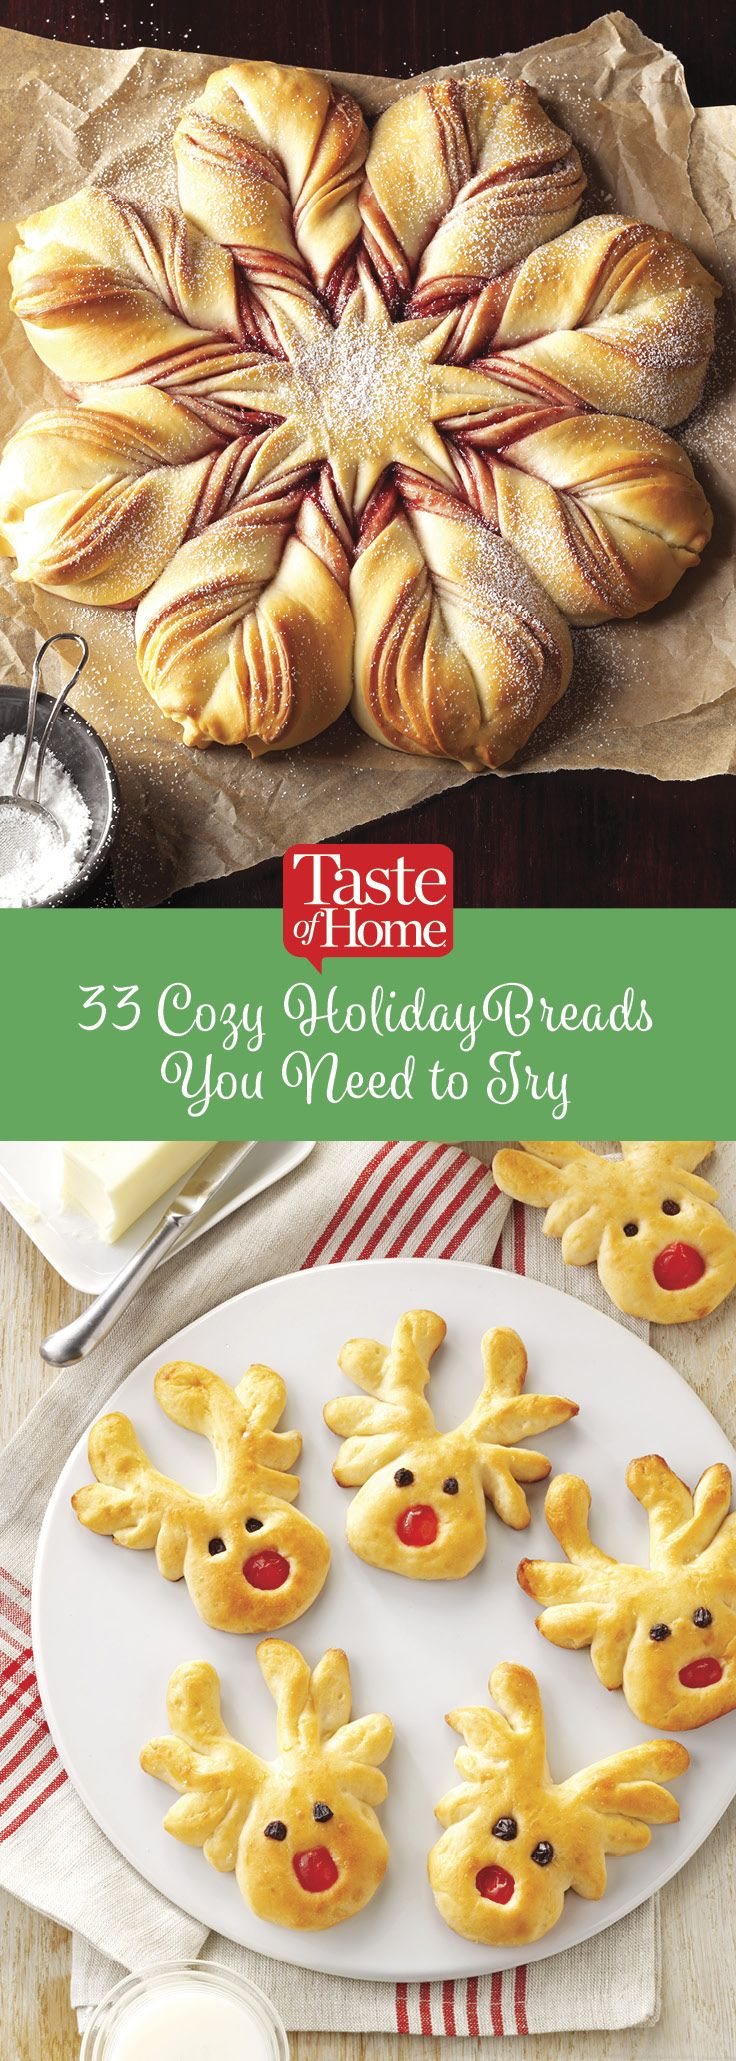 33 Cozy Holiday Breads You Need to Try